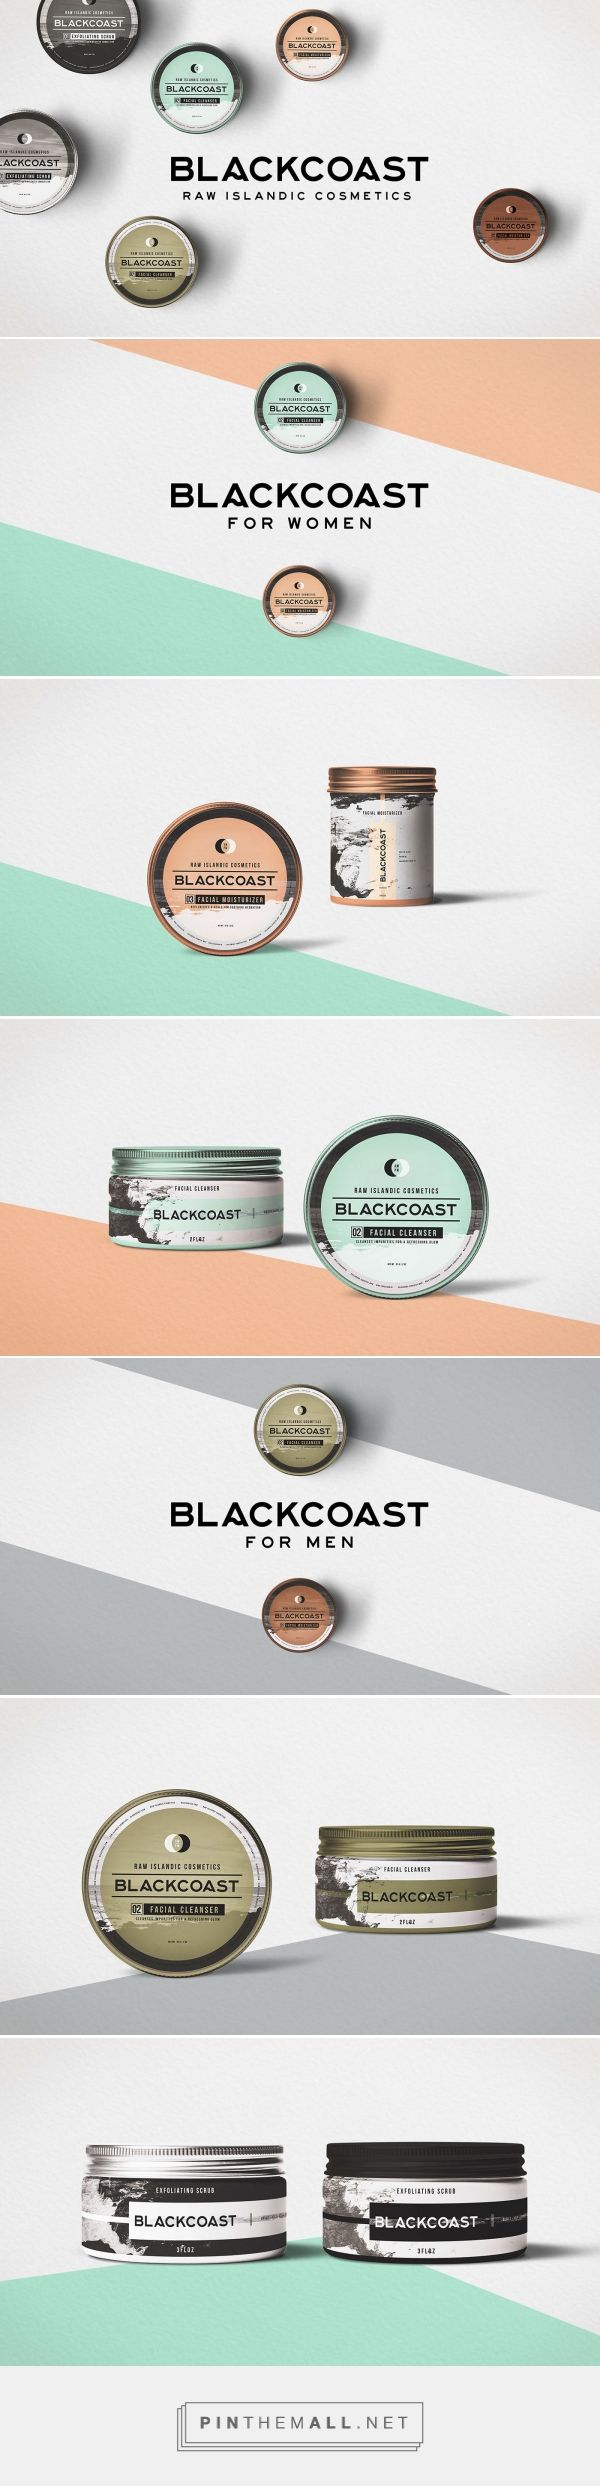 Branding and packaging design for BLACKCOAST // Spring 2016 on Behance by Wyatt…